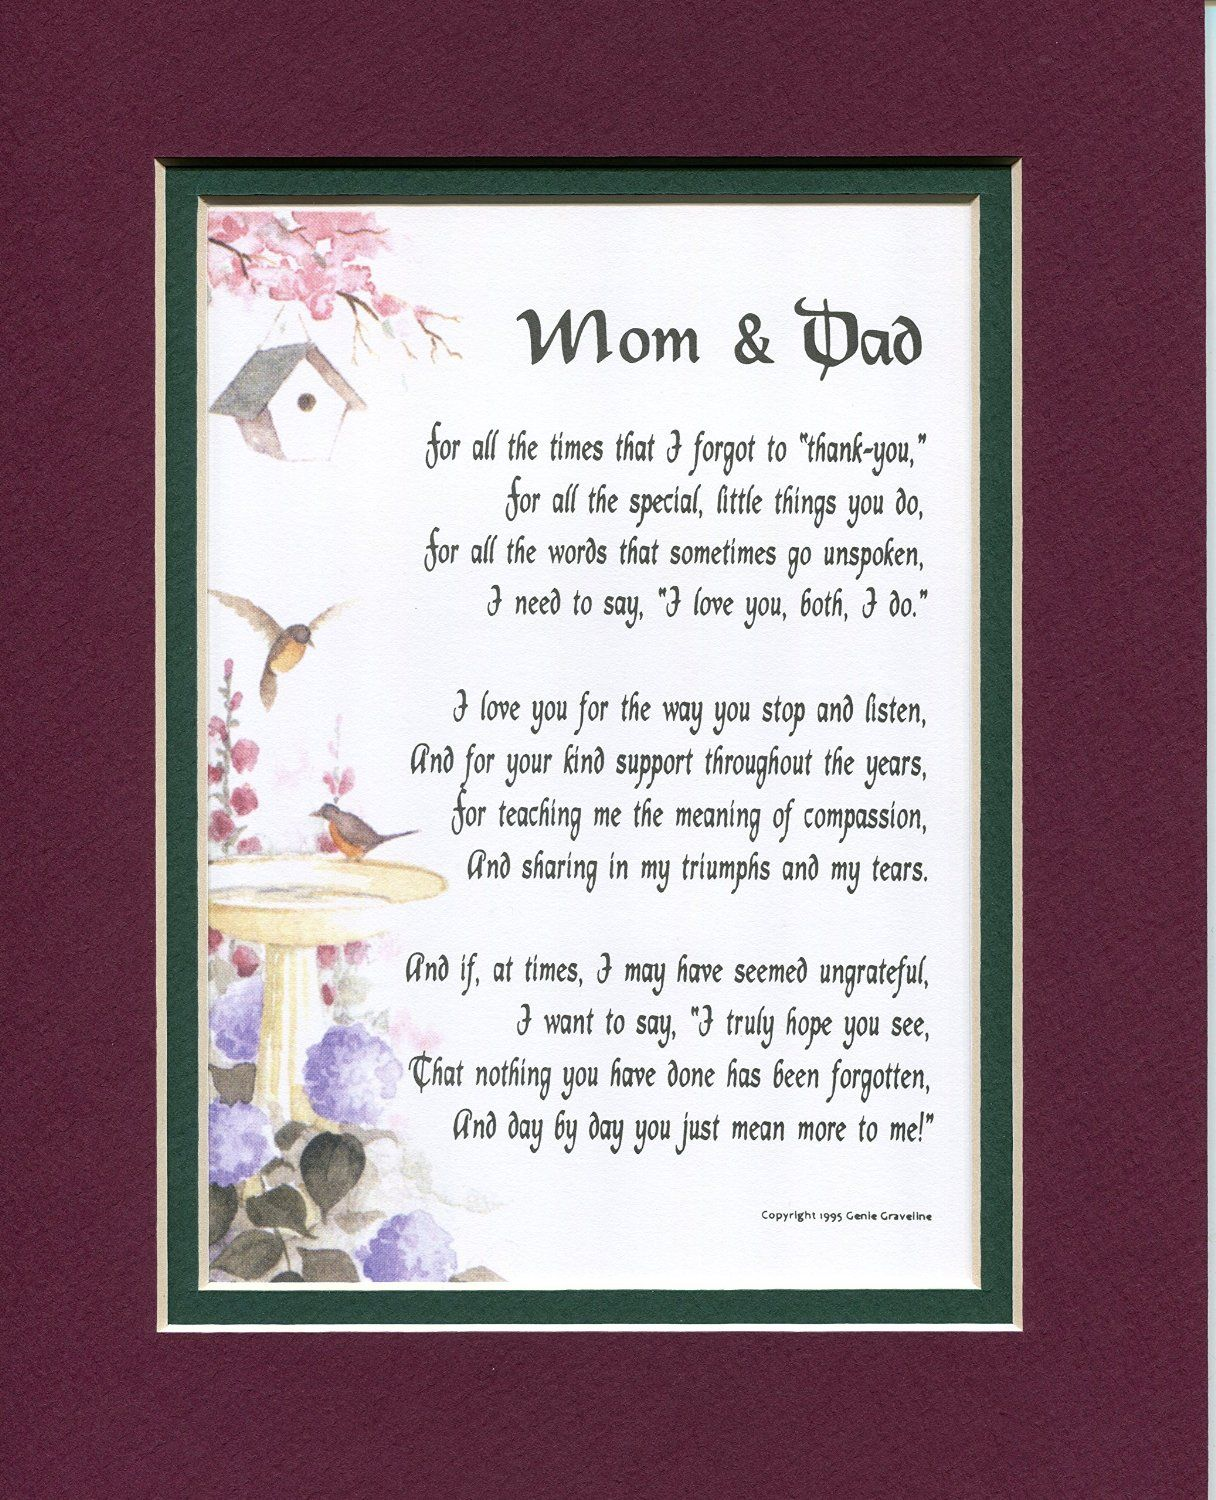 Mom And Dad 135 Touching 8x10 Poem Double Matted In Good Anniversary Gifts45th Wedding